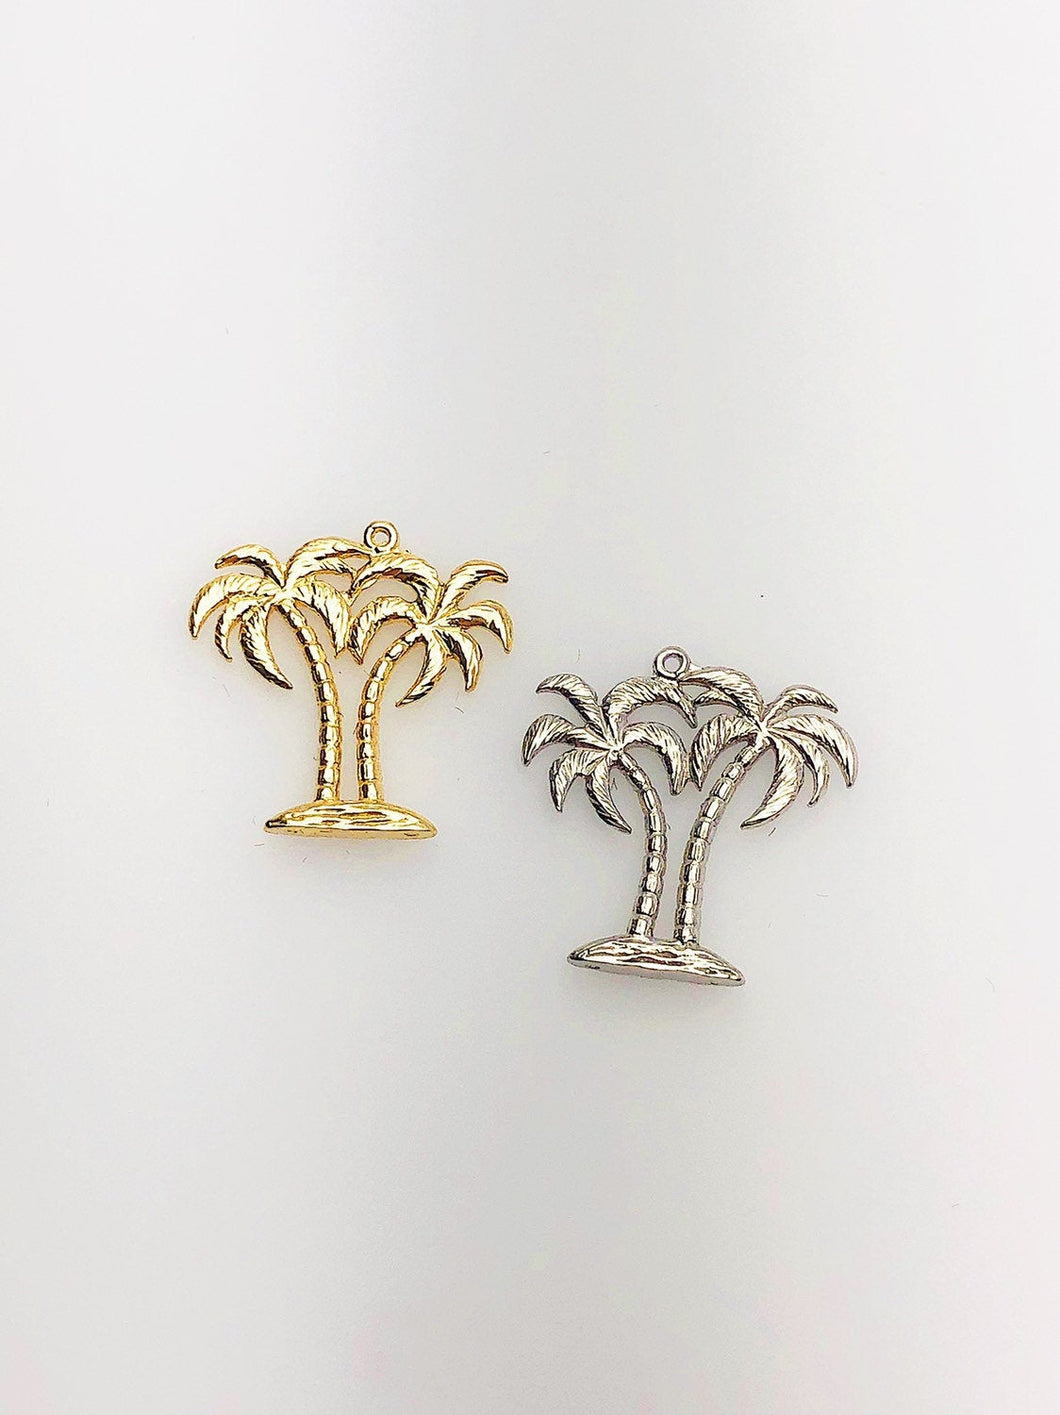 14K Solid Gold Palm Trees Charm w/ Ring, 18.0x18.5mm, Made in USA (L-129)